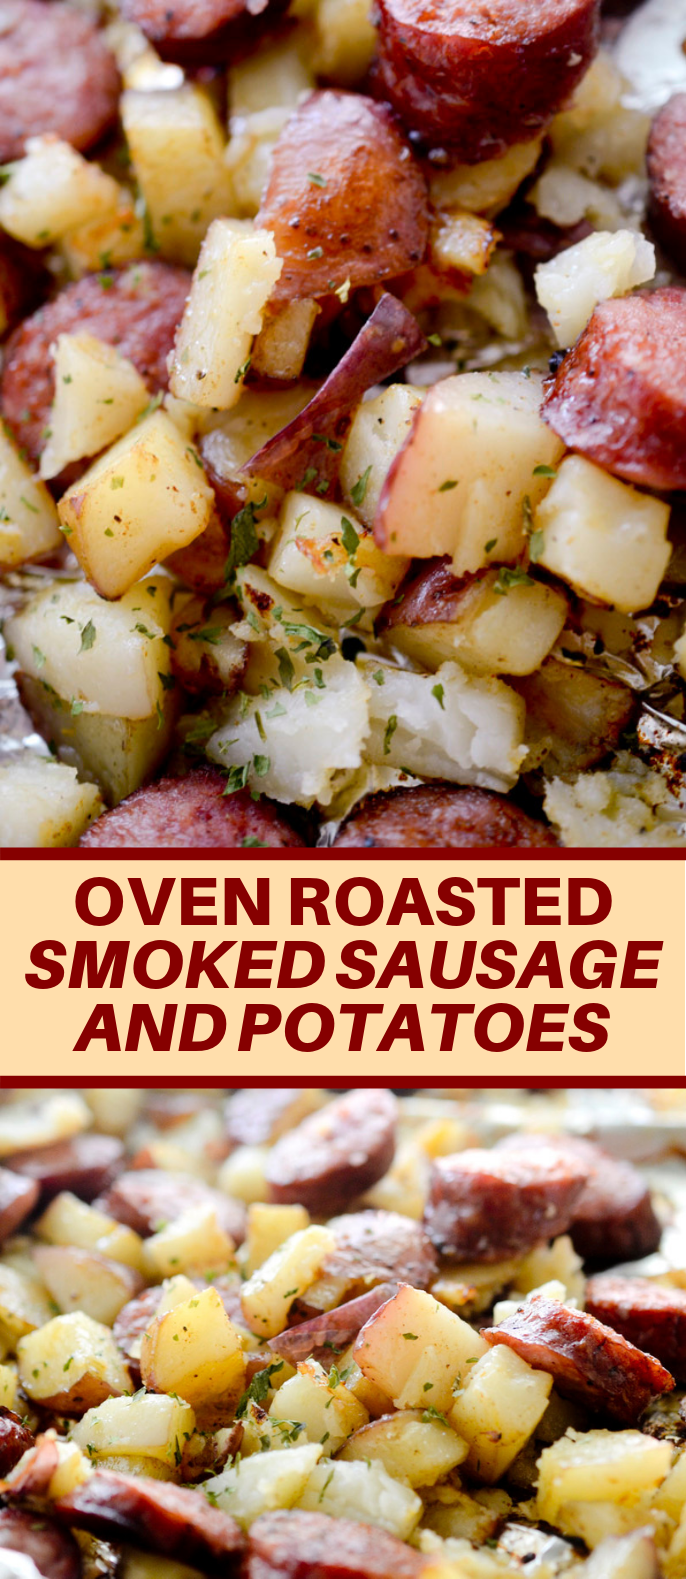 OVEN ROASTED SMOKED SAUSAGE AND POTATOES #veggies #easymeal